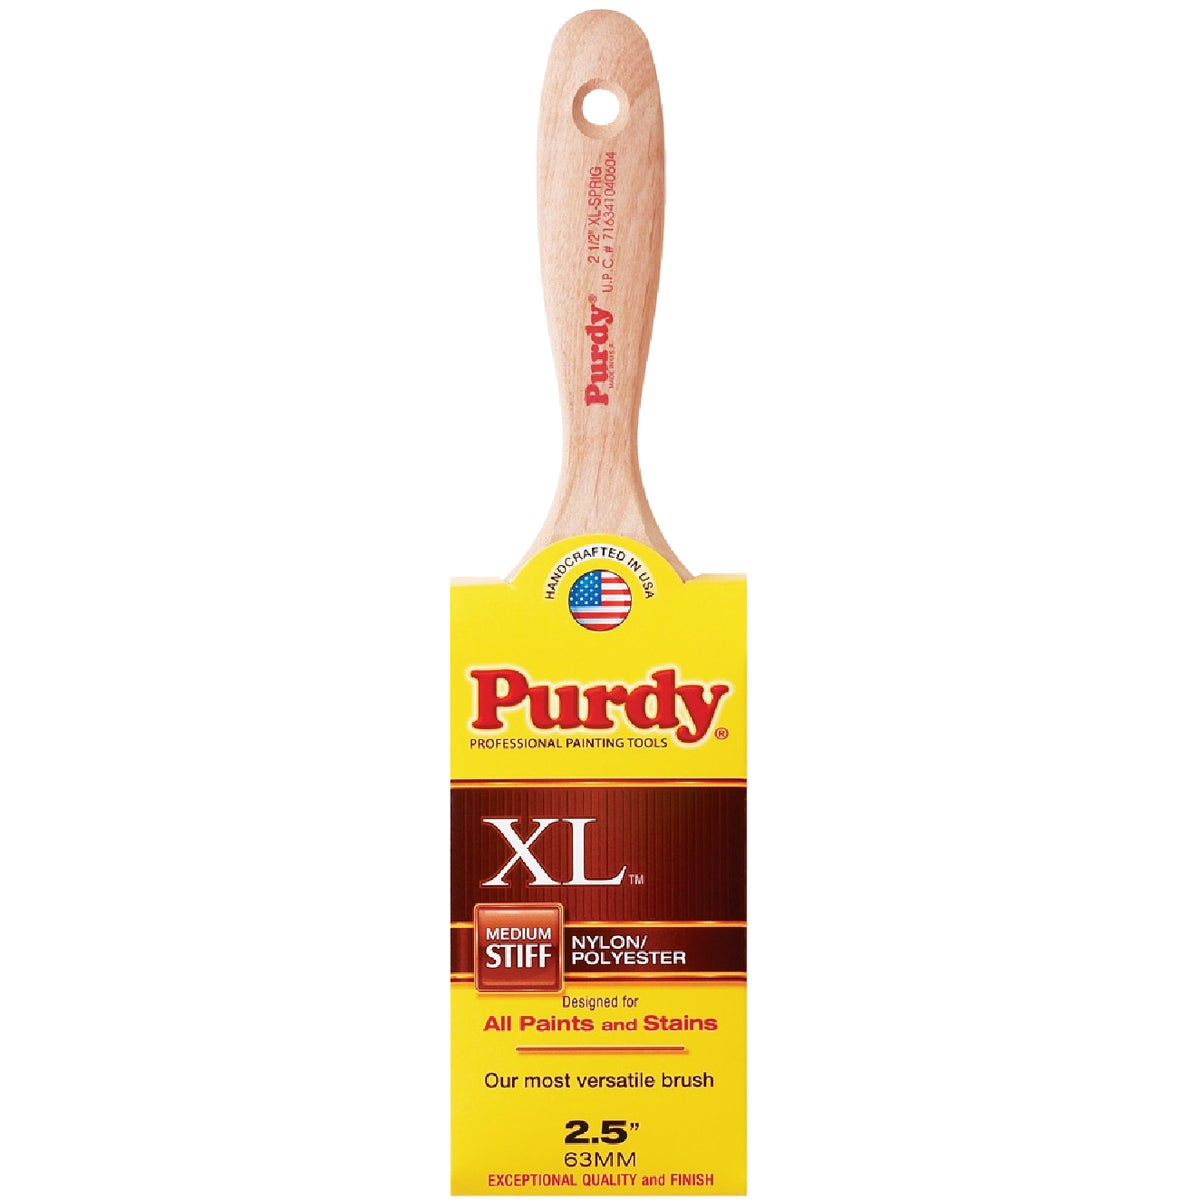 "2-1/2"" XL-SPRIG BRUSH - 144380325 by Purdy Bestt Liebco"